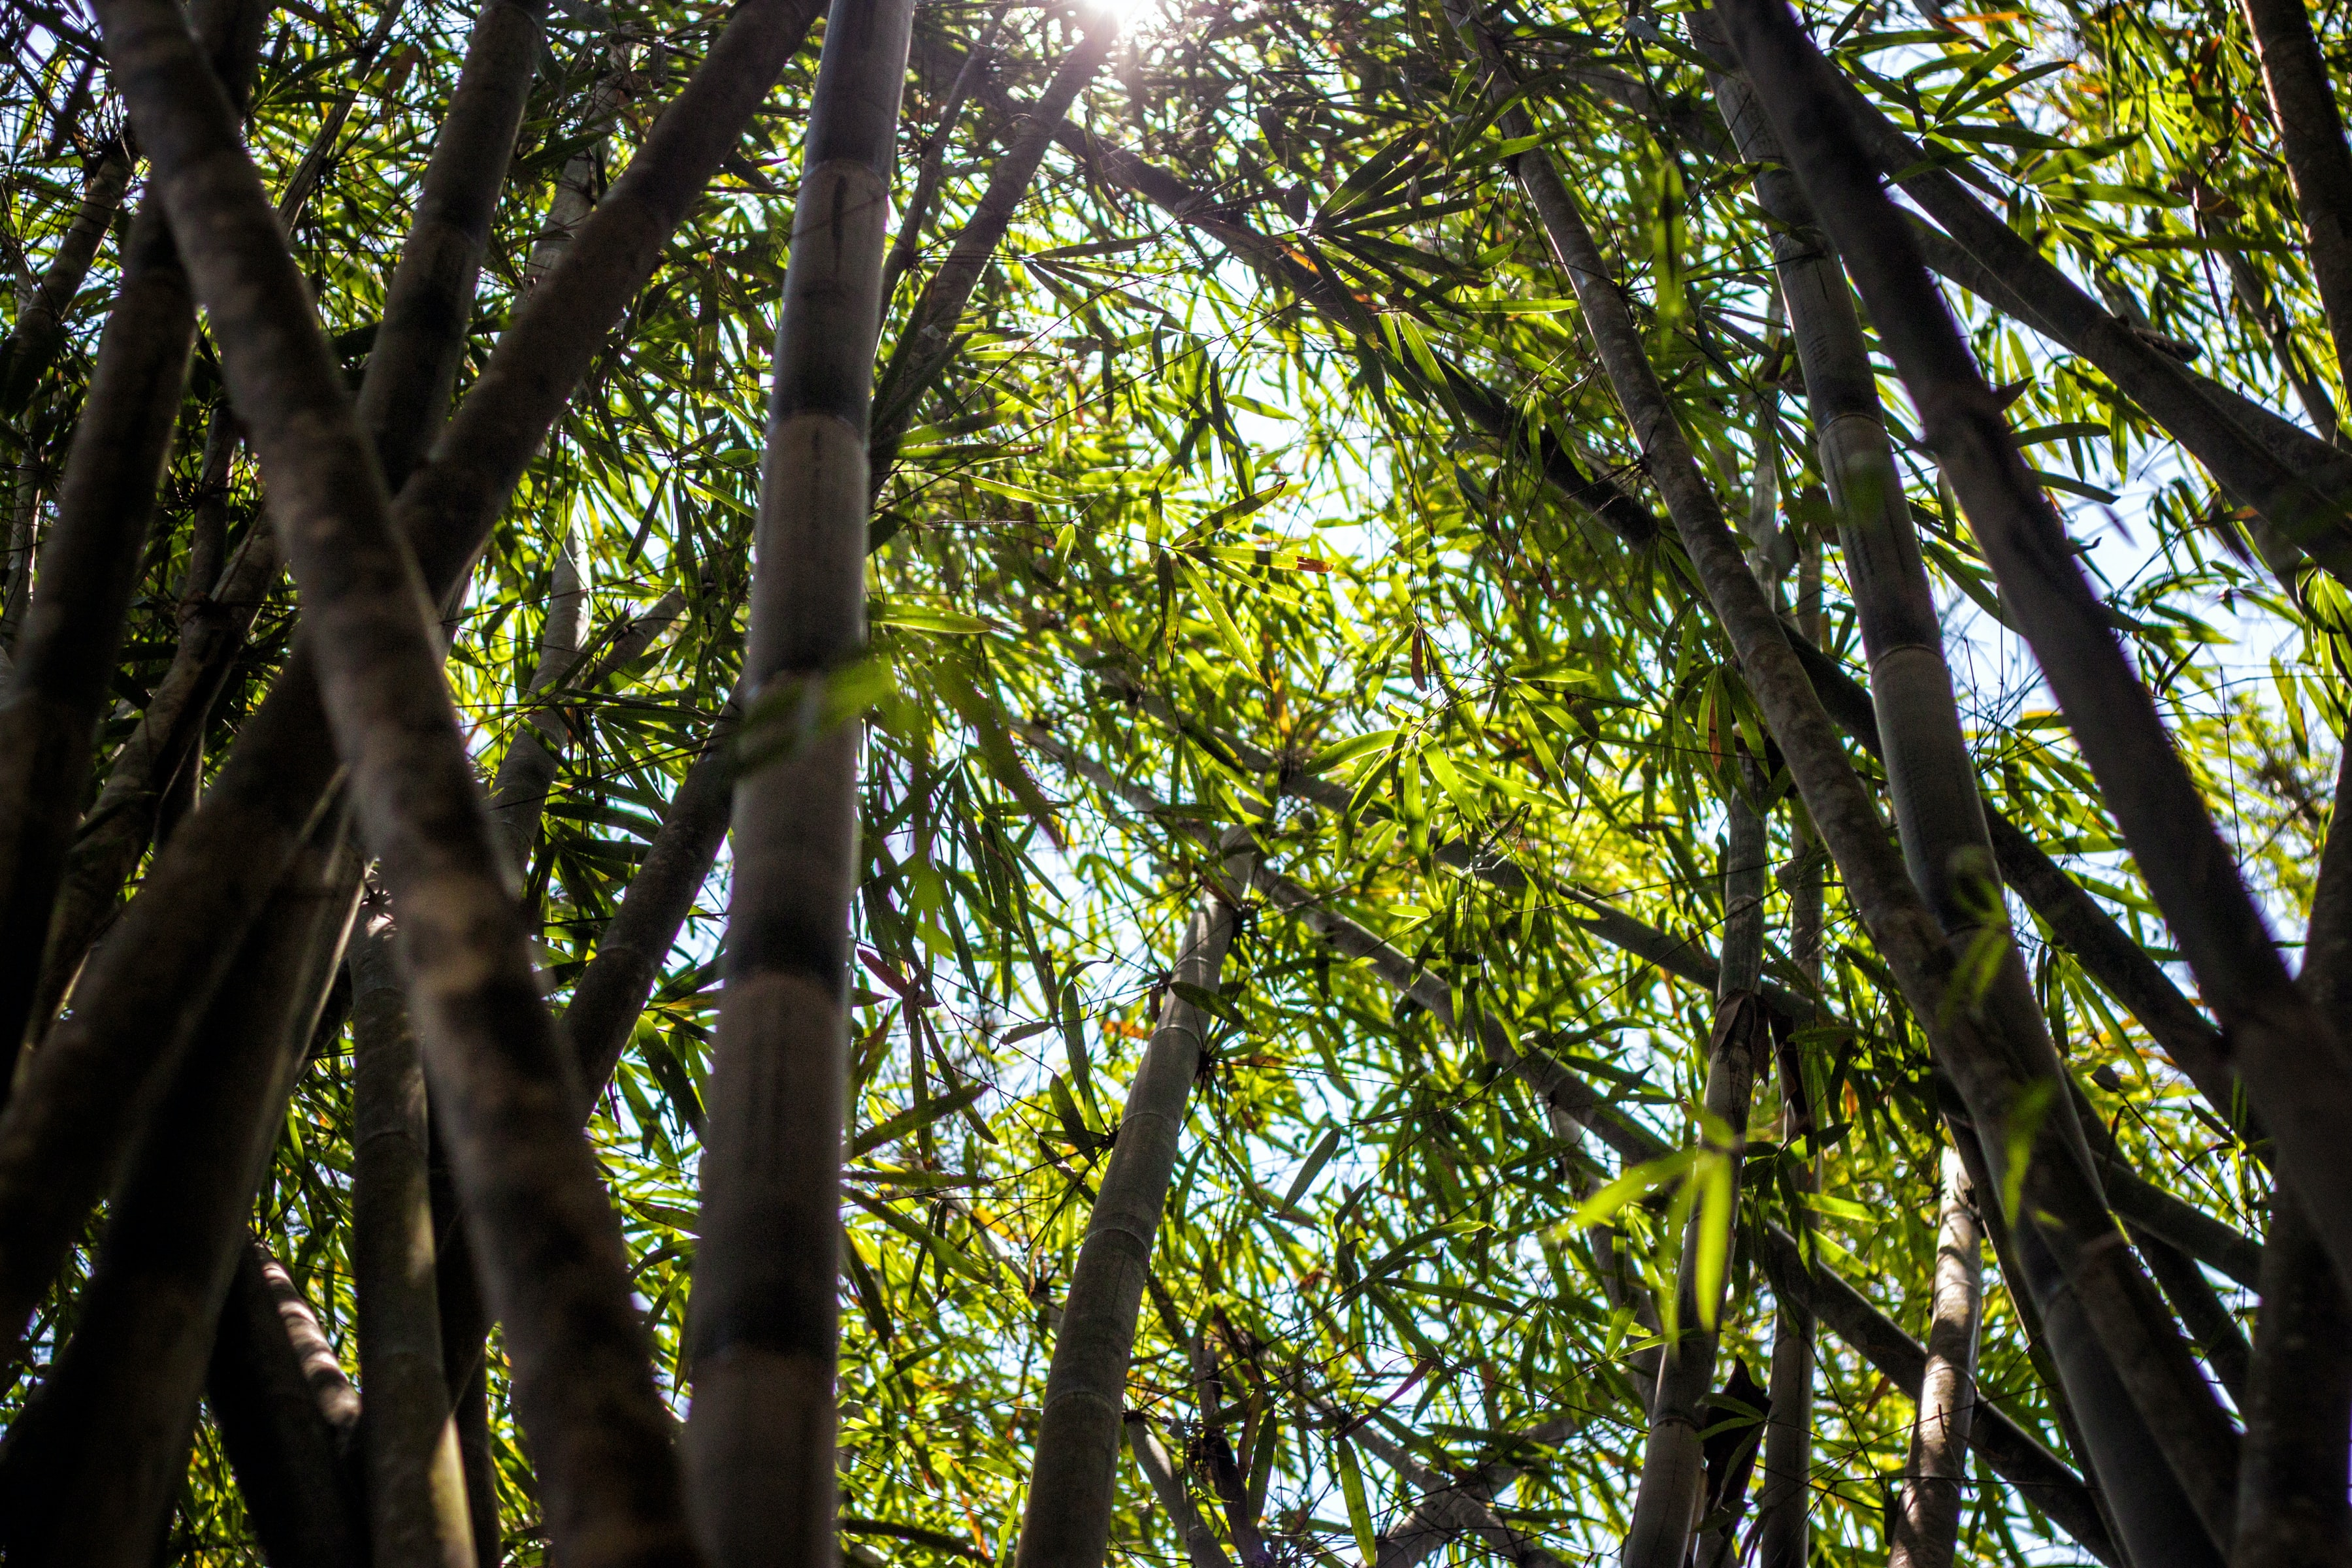 bamboo trees during daytime